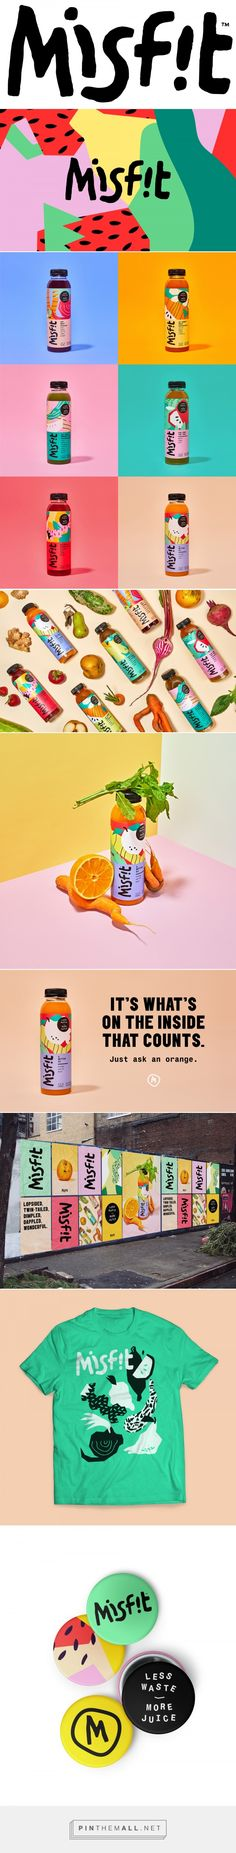 Brand New: New Logo, Identity, and Packaging for Misfit by Gander... - a grouped images picture - Pin Them All